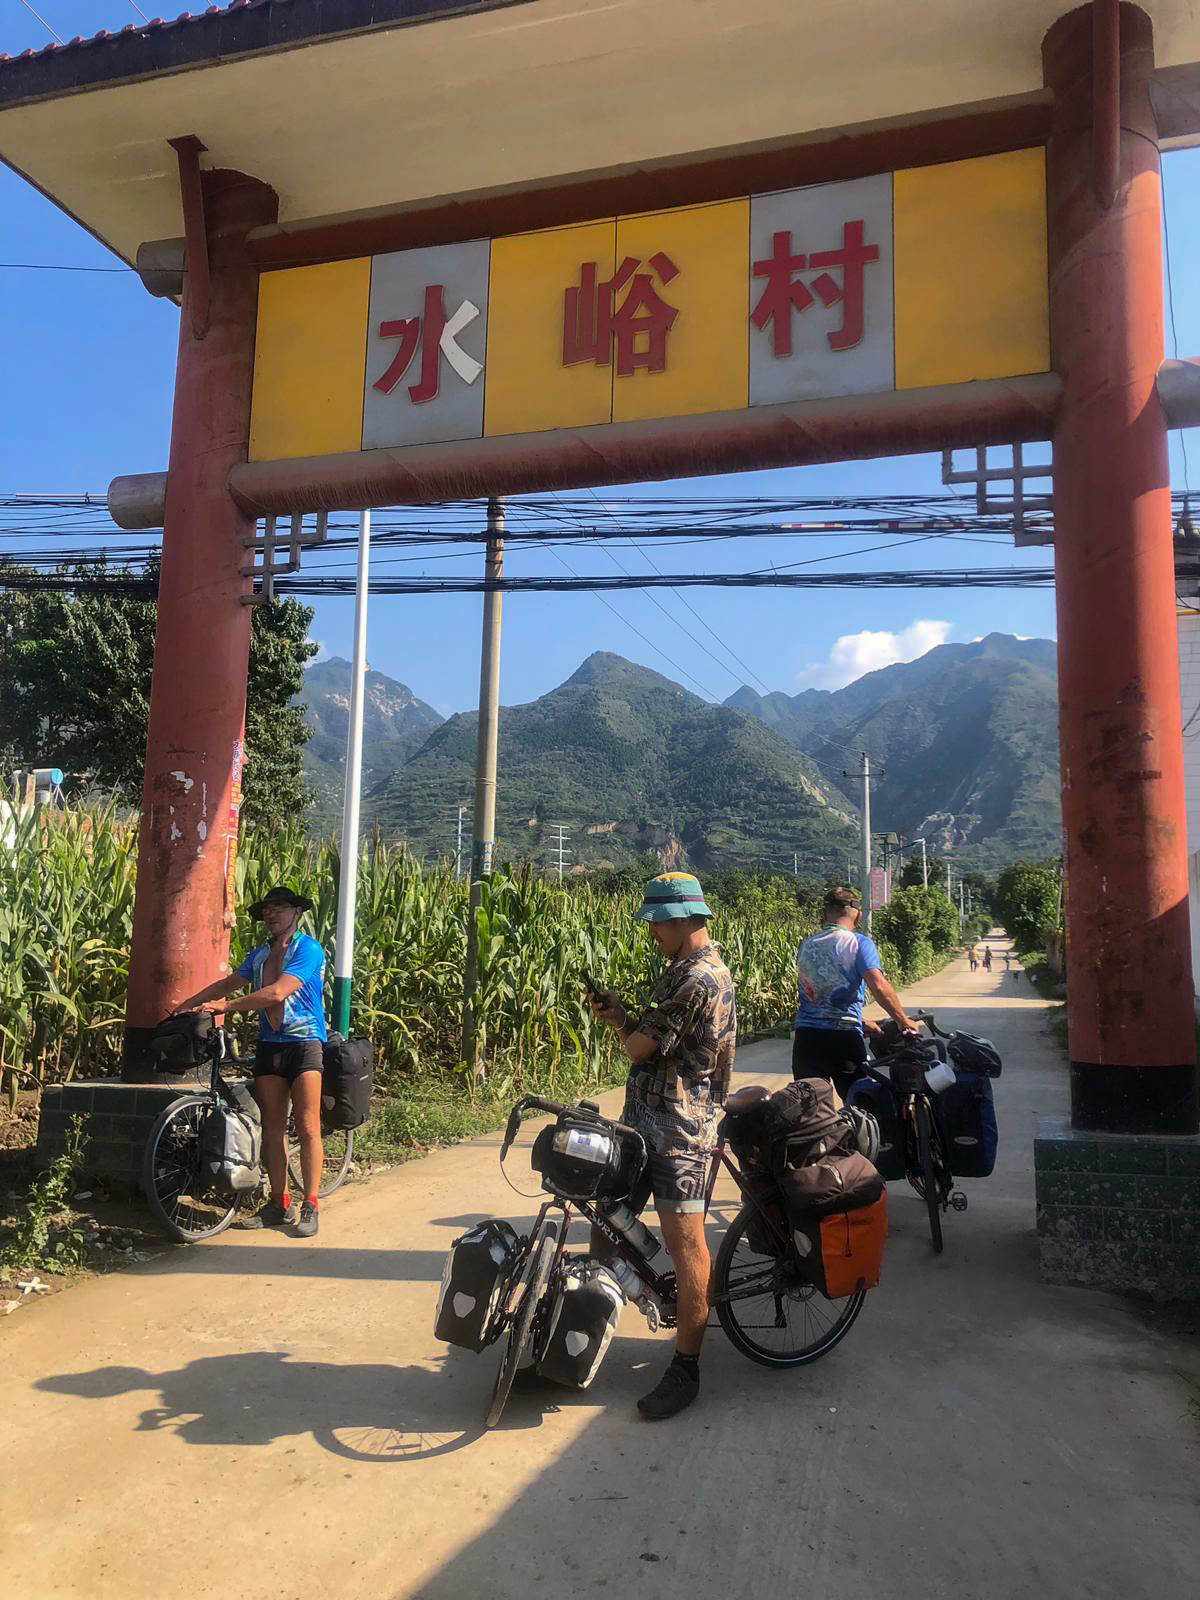 Pitstop with terraced mountains